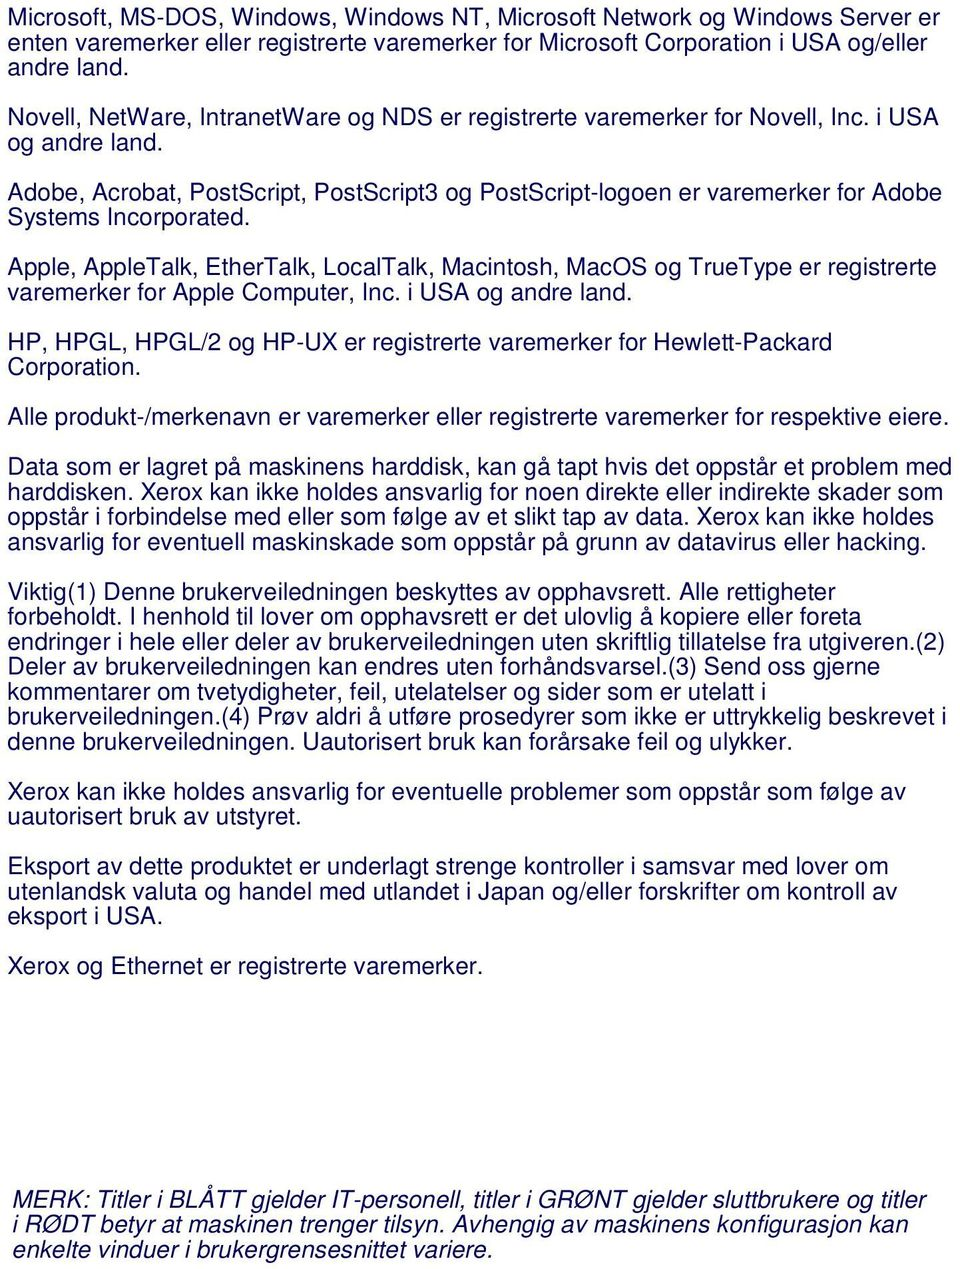 Adobe, Acrobat, PostScript, PostScript3 og PostScript-logoen er varemerker for Adobe Systems Incorporated.